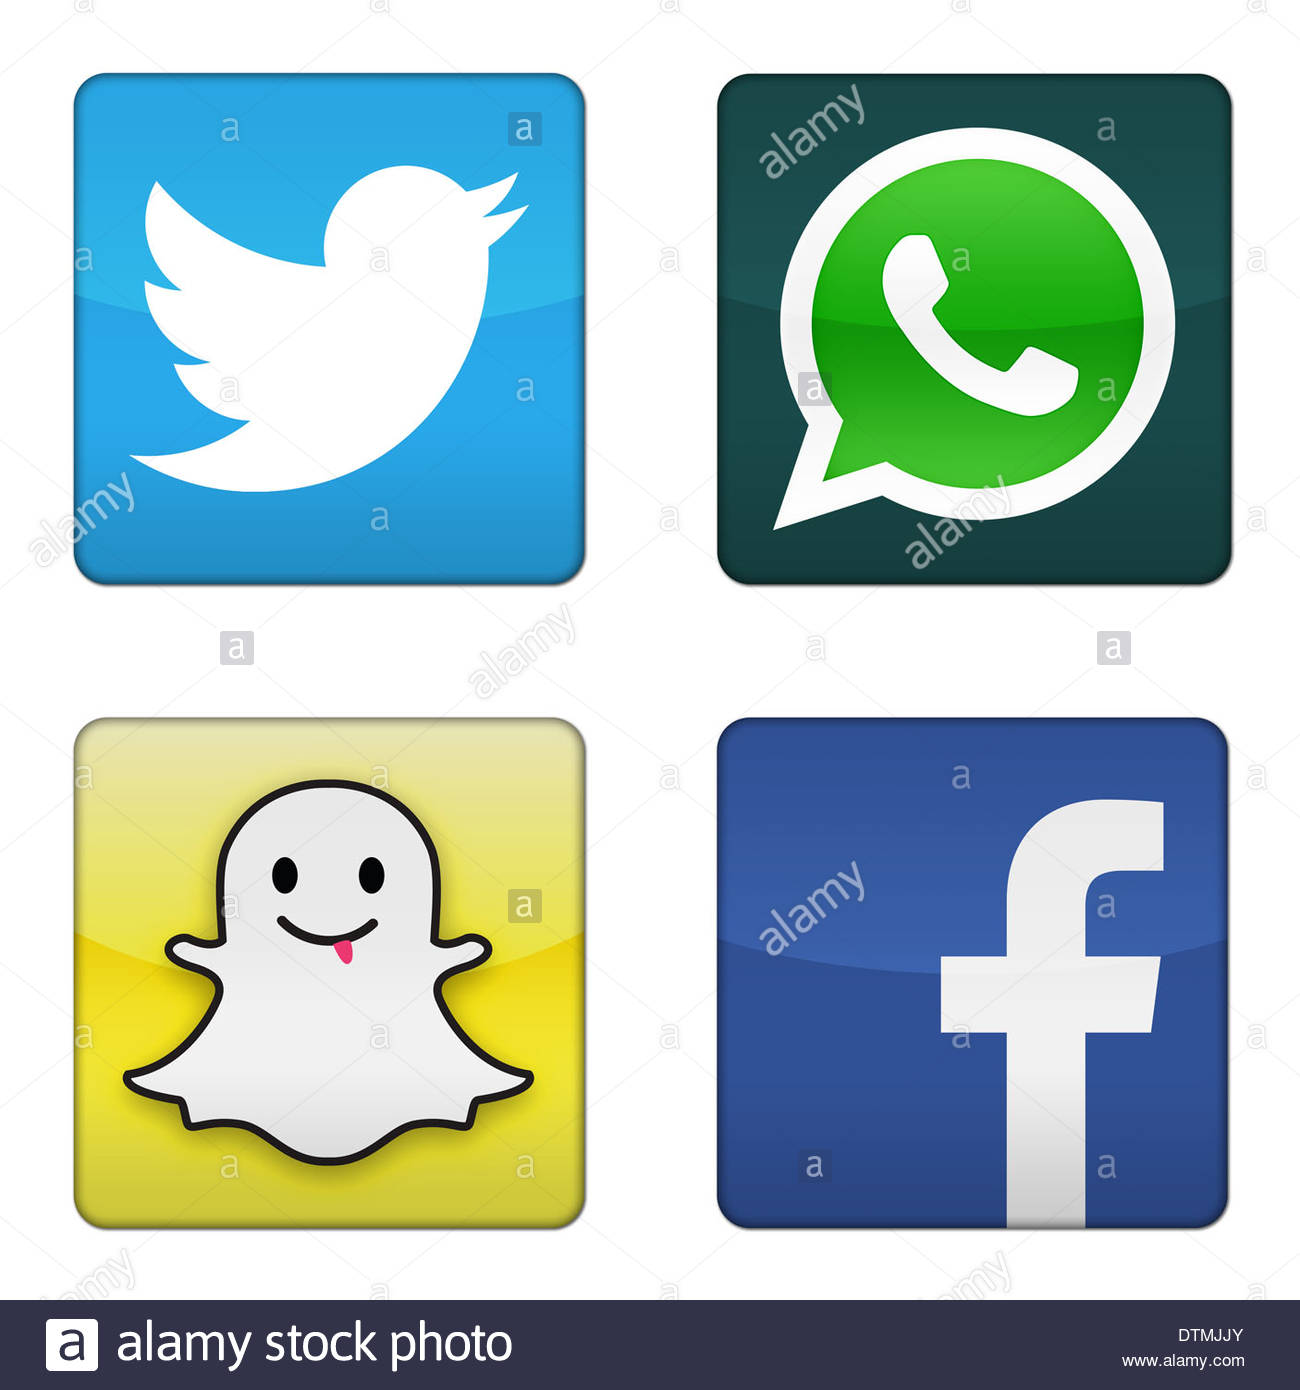 Facebook emoticons codes symbols for chat images symbol and sign whatsapp logo icon button stock photo royalty free image twitter whatsapp snapchat facebook icon logo app buycottarizona